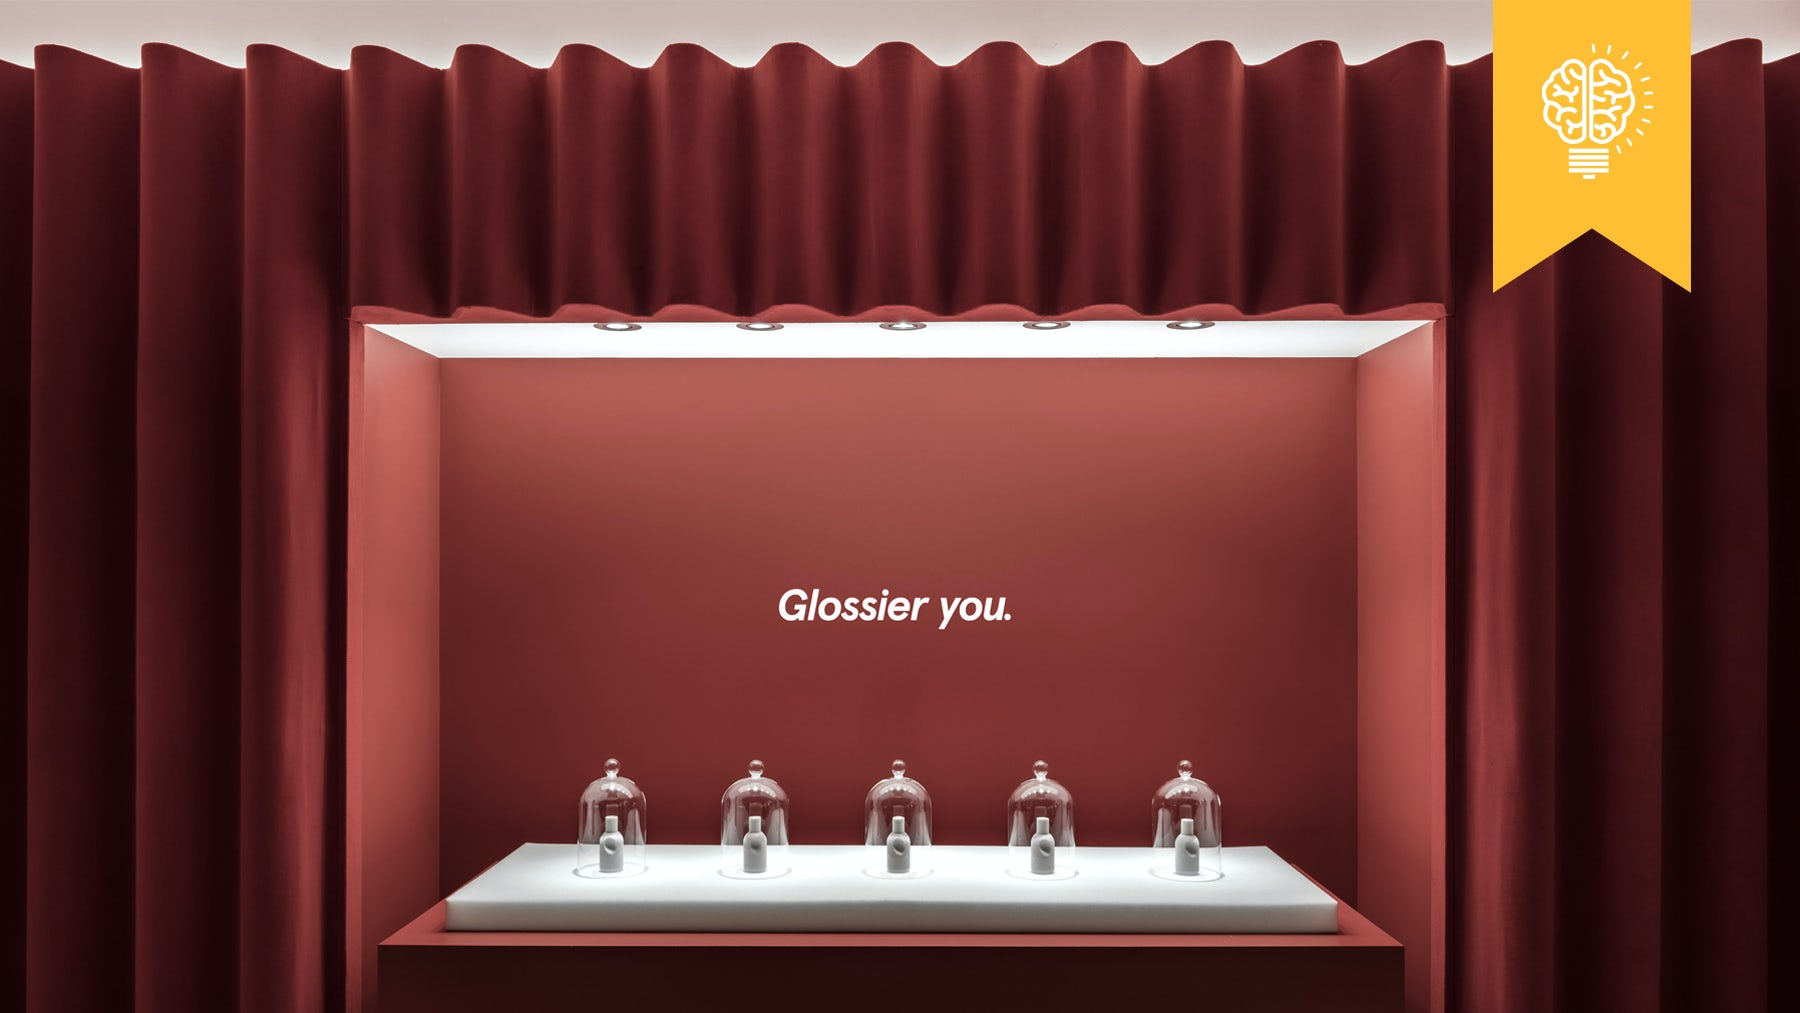 The Glossier You pop-up   Source: Courtesy